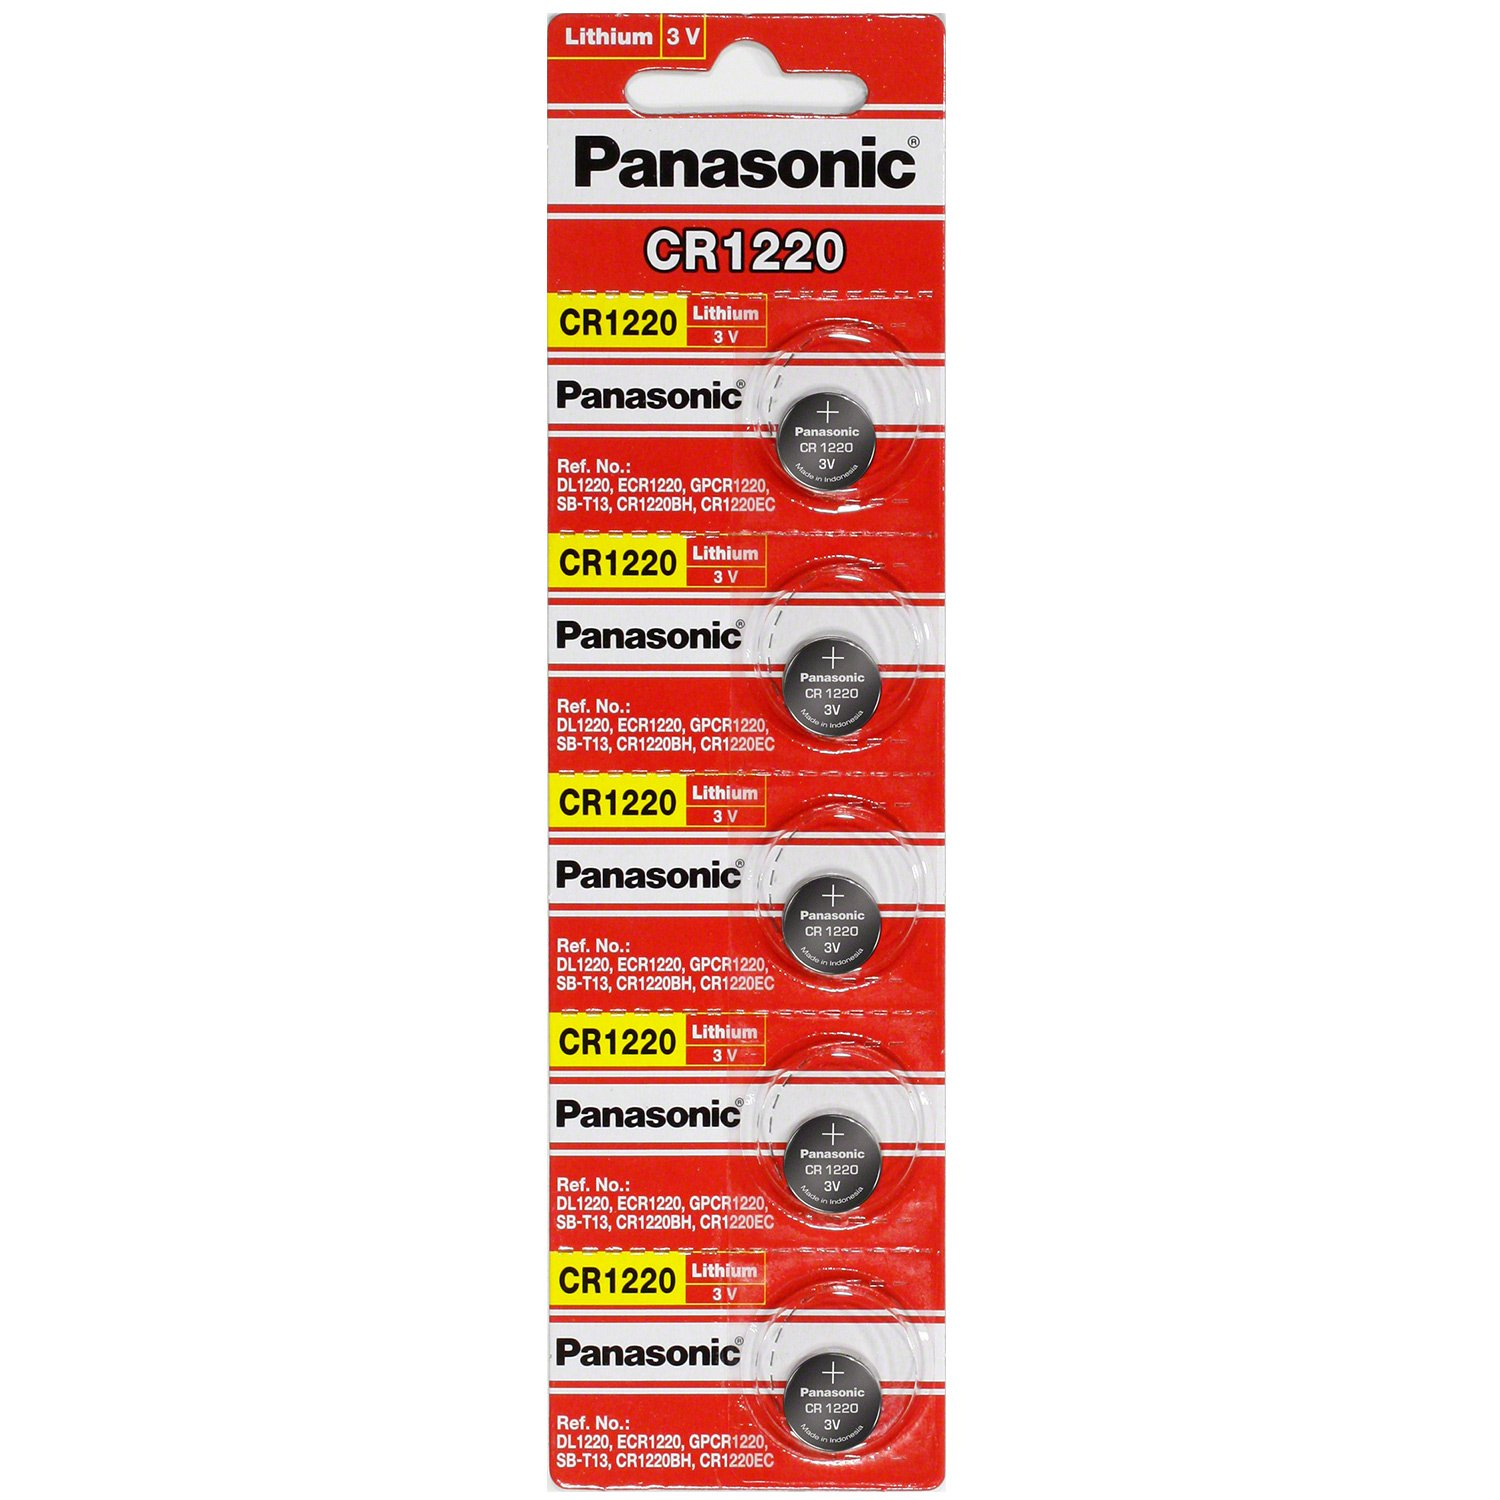 Panasonic CR1220 3 Volt Lithium Coin Battery (Pack of 100)